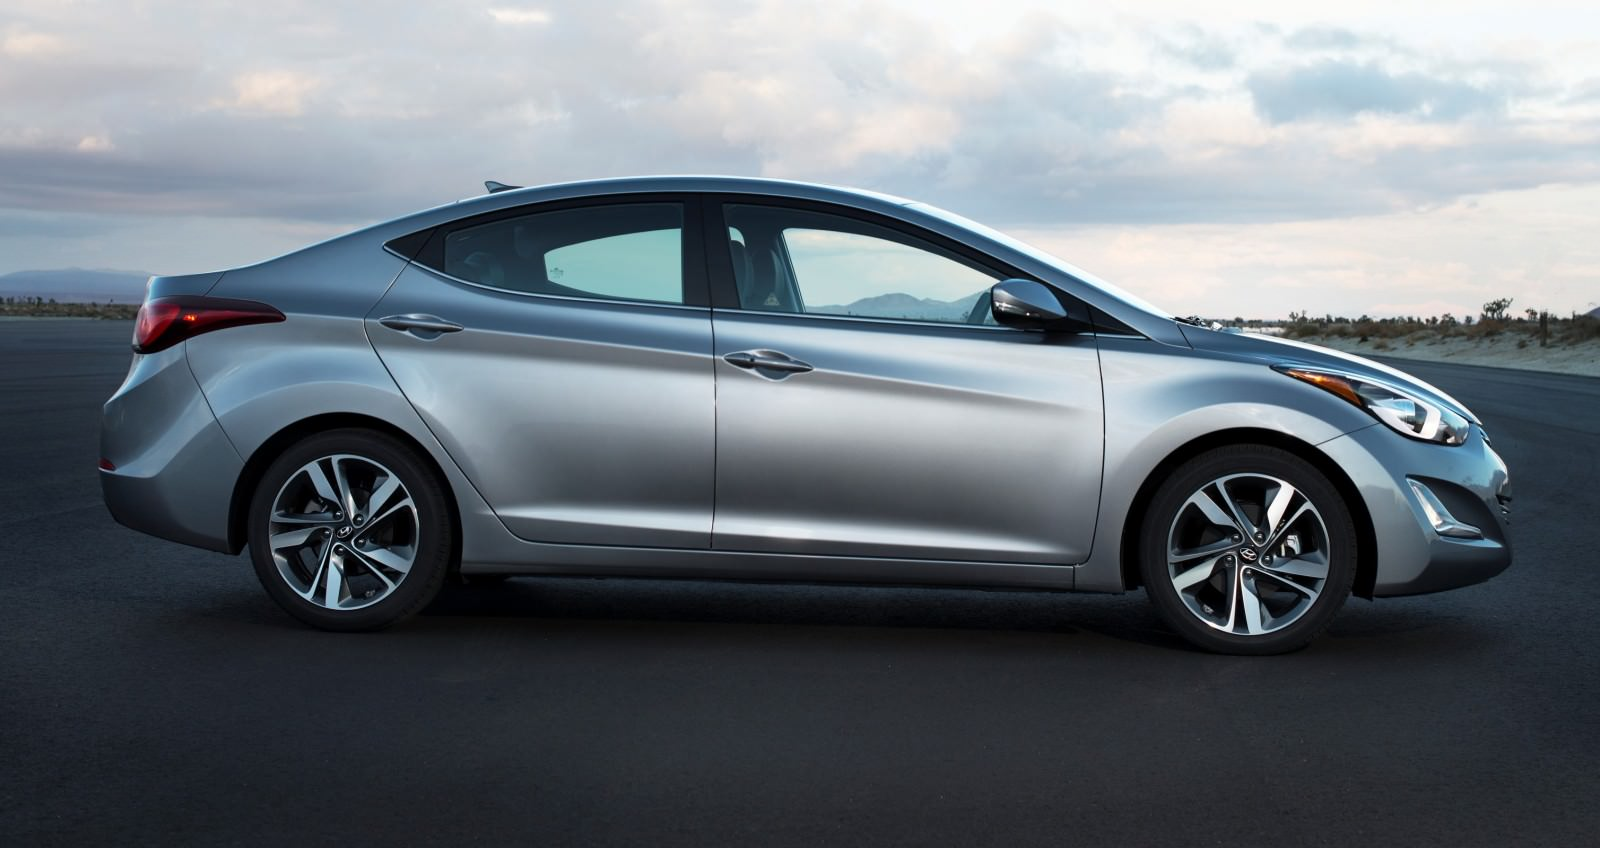 2015 Hyundai Elantra Sedan Brings Classy LED and Tech Updates  23